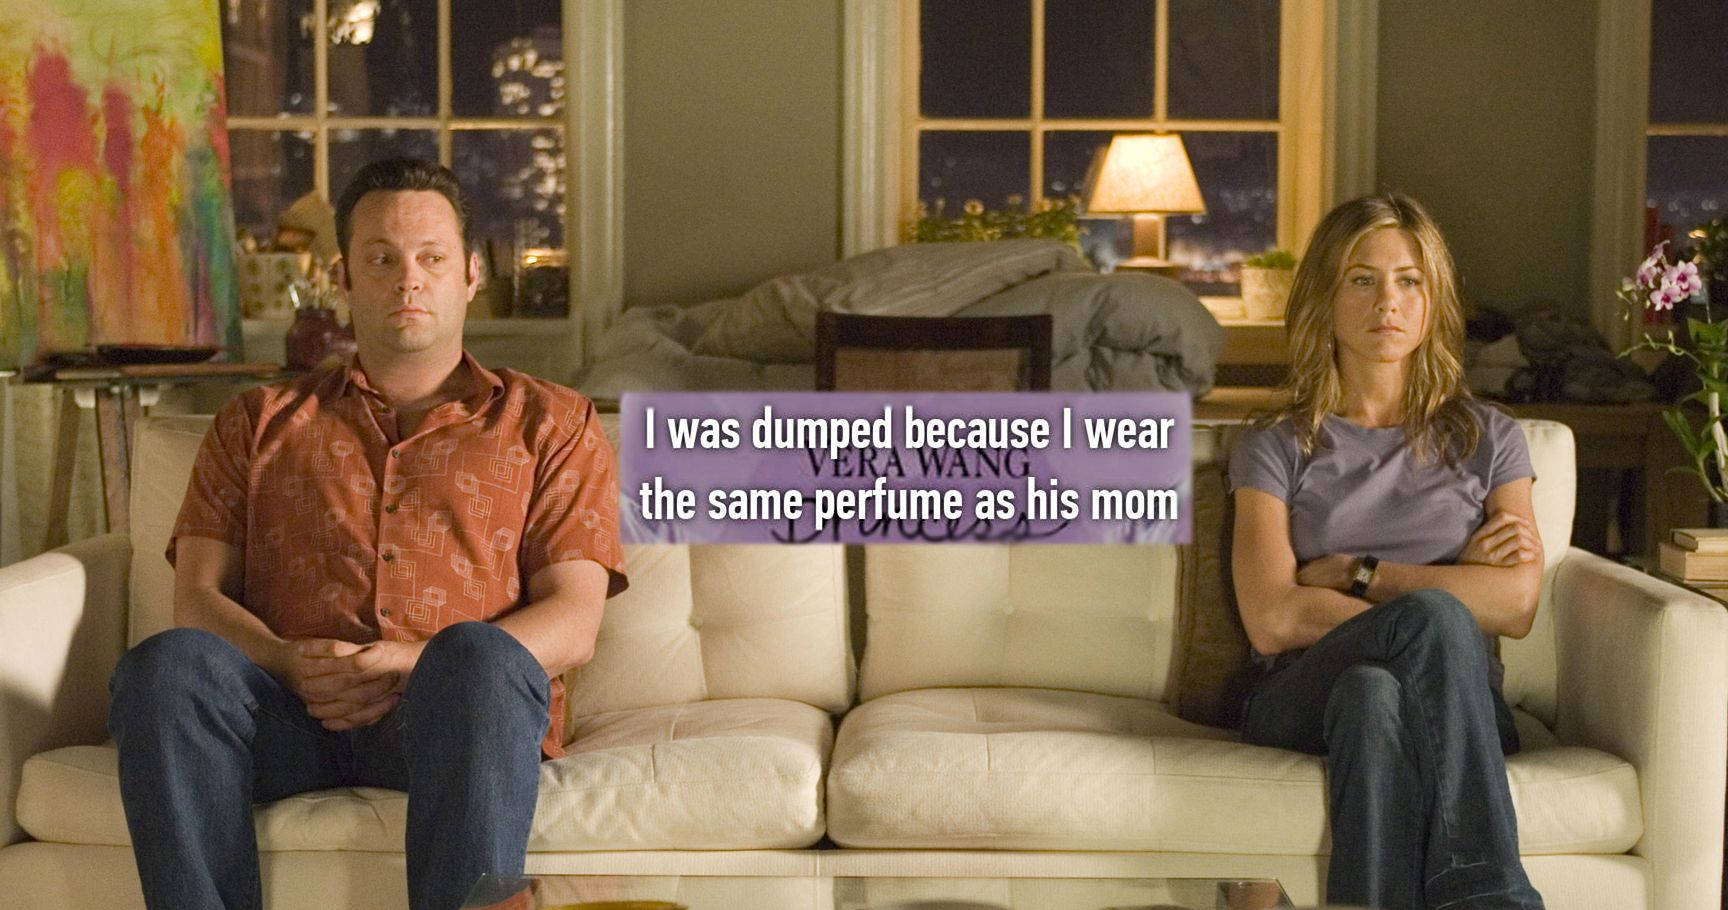 15 People Confess The Ridiculous Reasons They Were Dumped